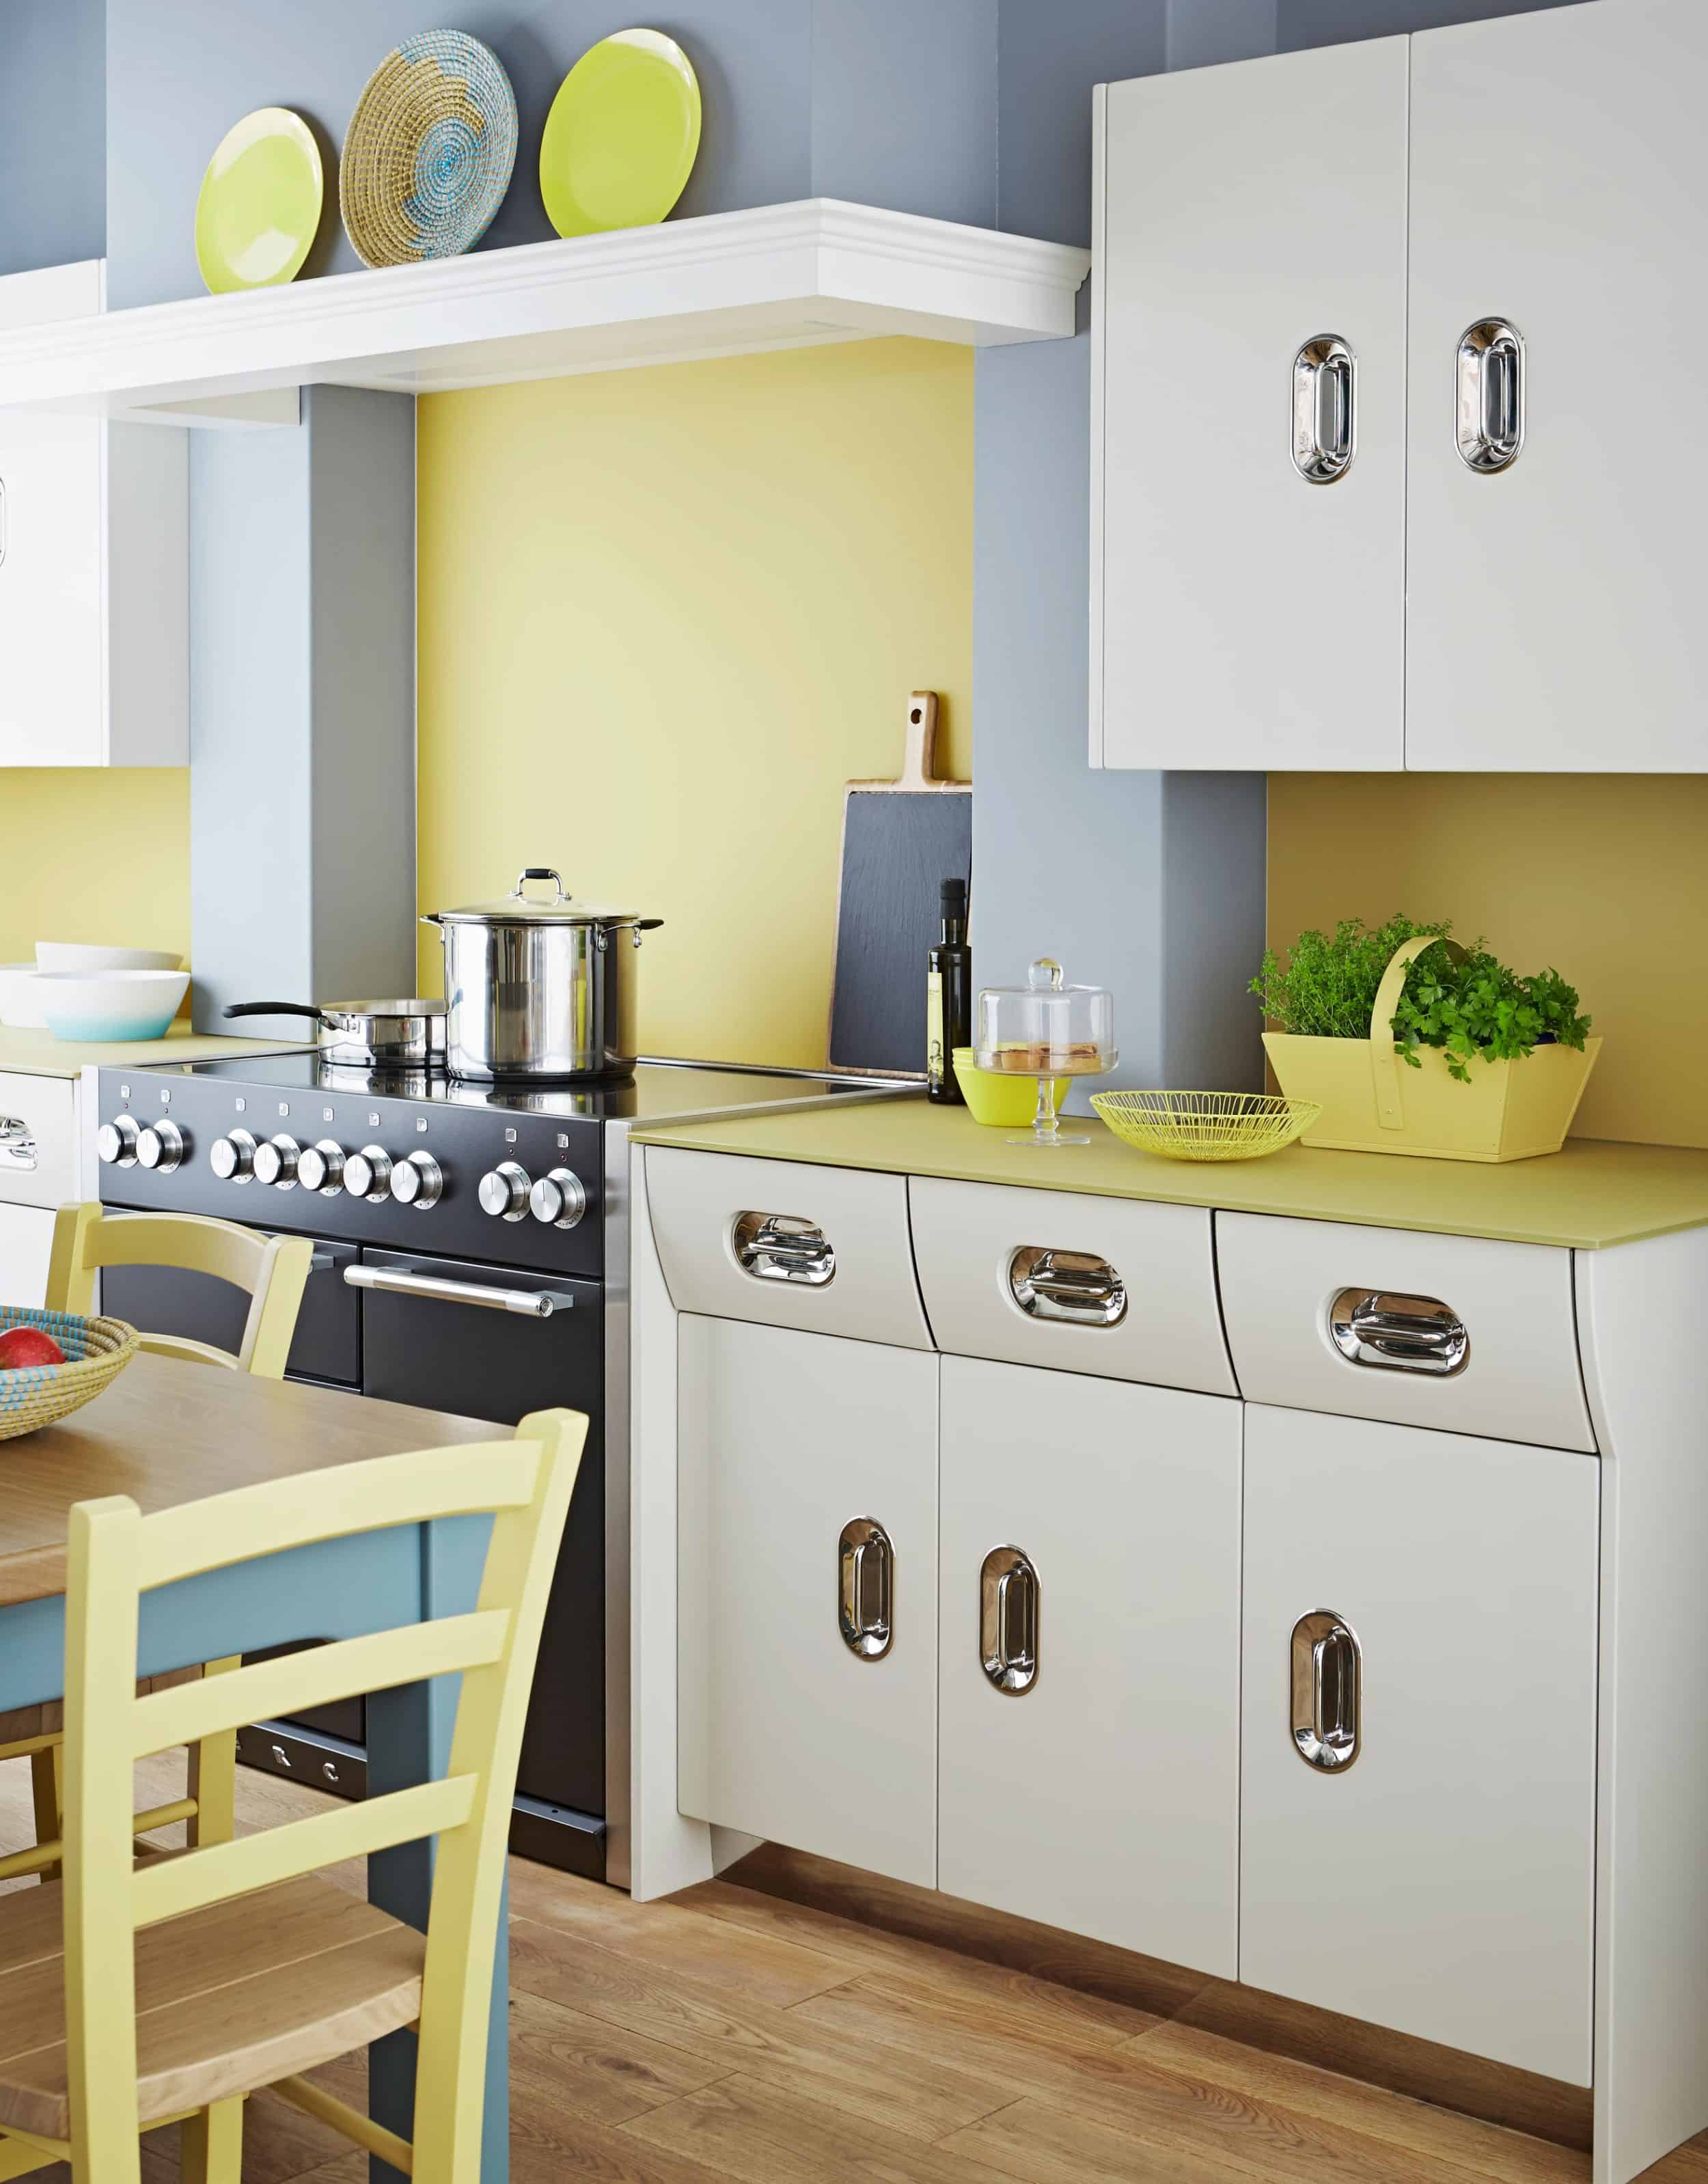 Retro kitchen John Lewis of Hungerford